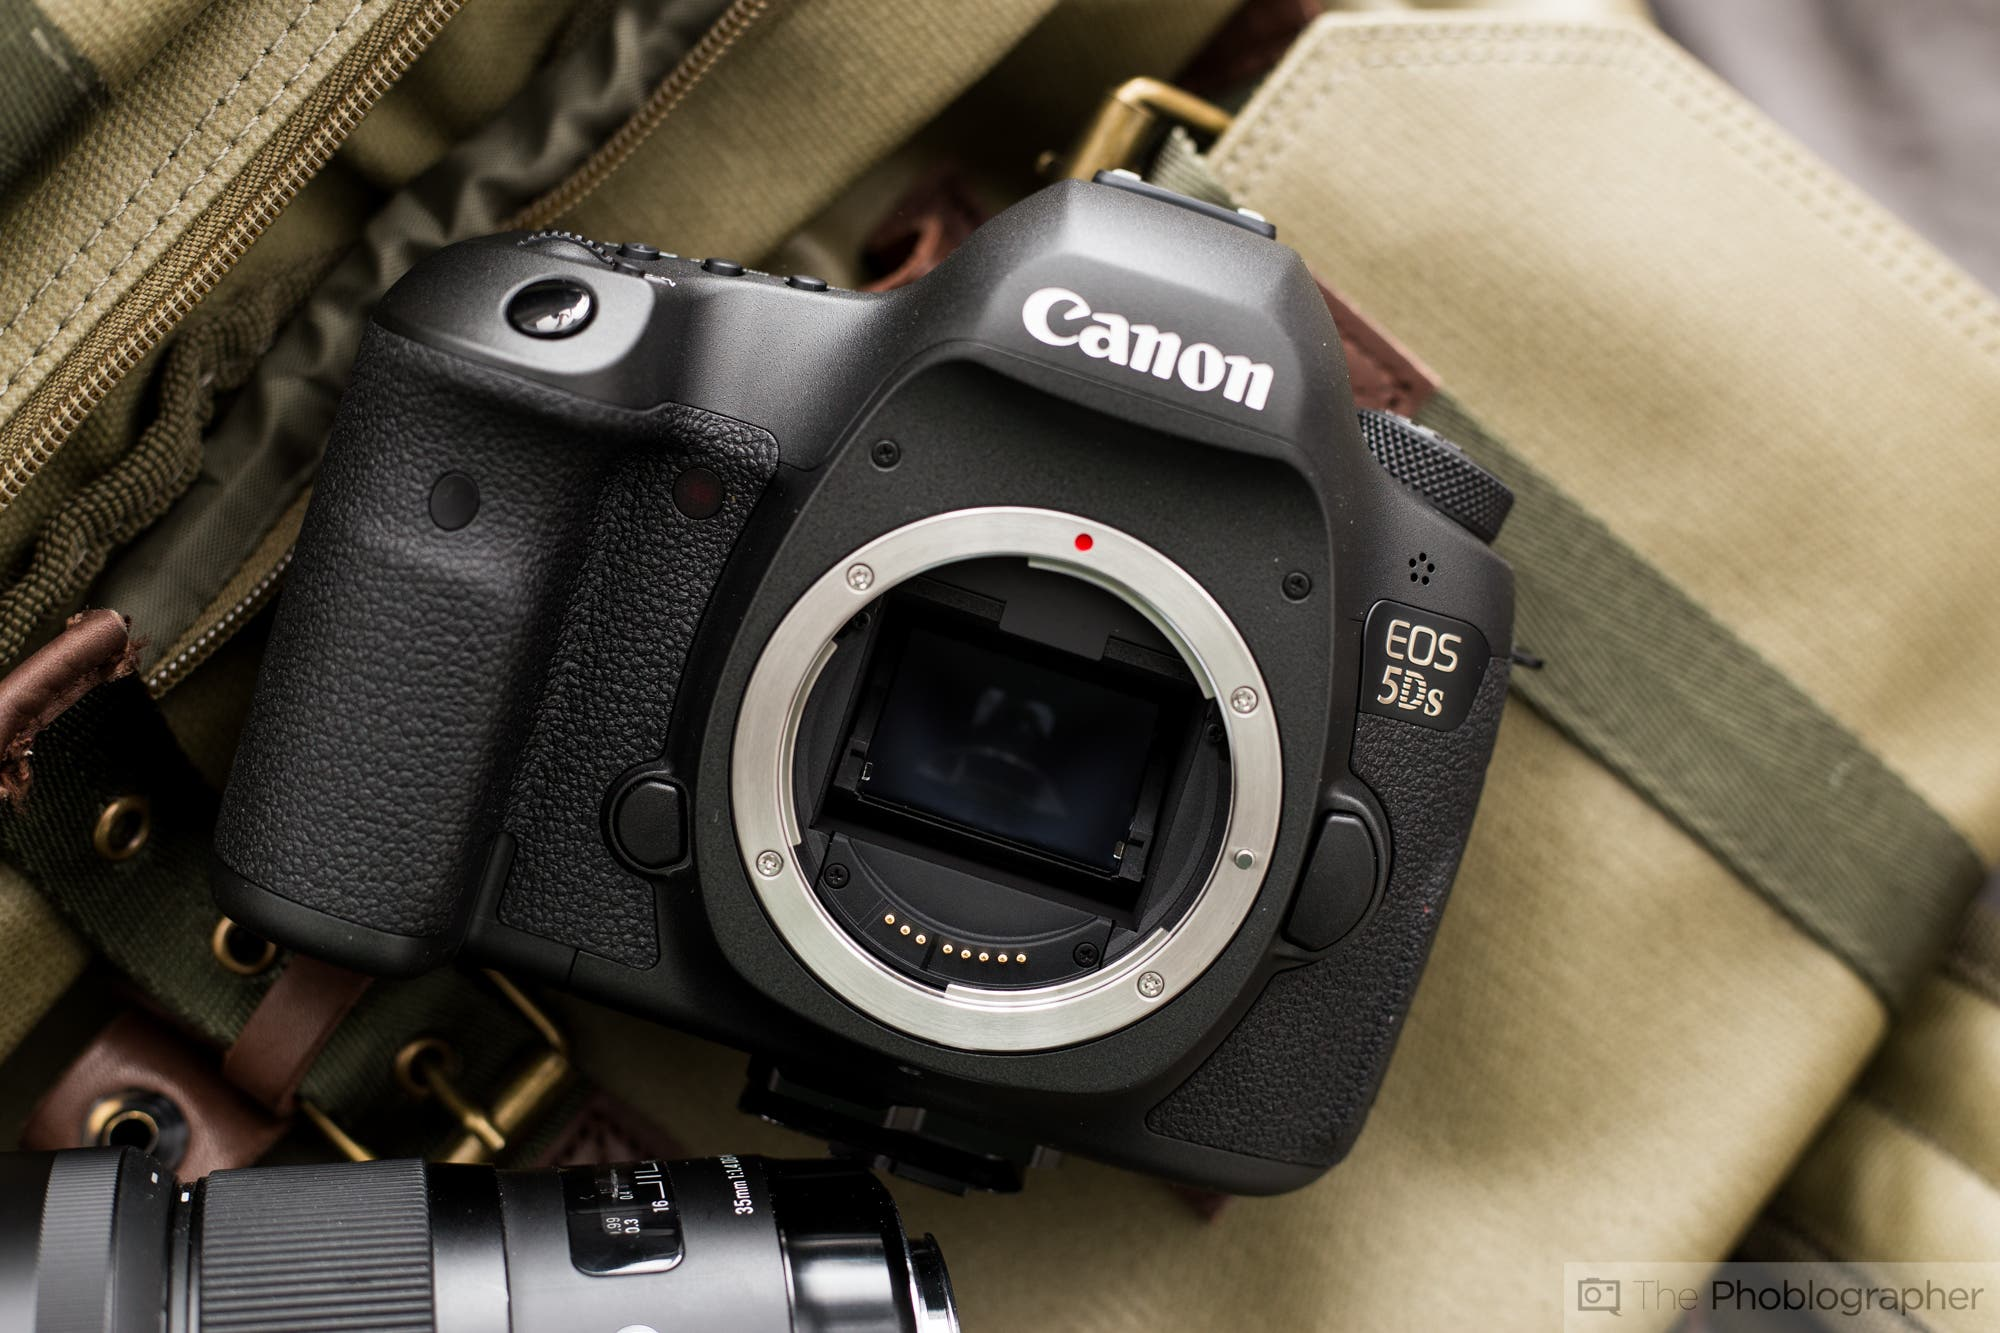 Six High Resolution, Full Frame Cameras That Capture Details With Ease